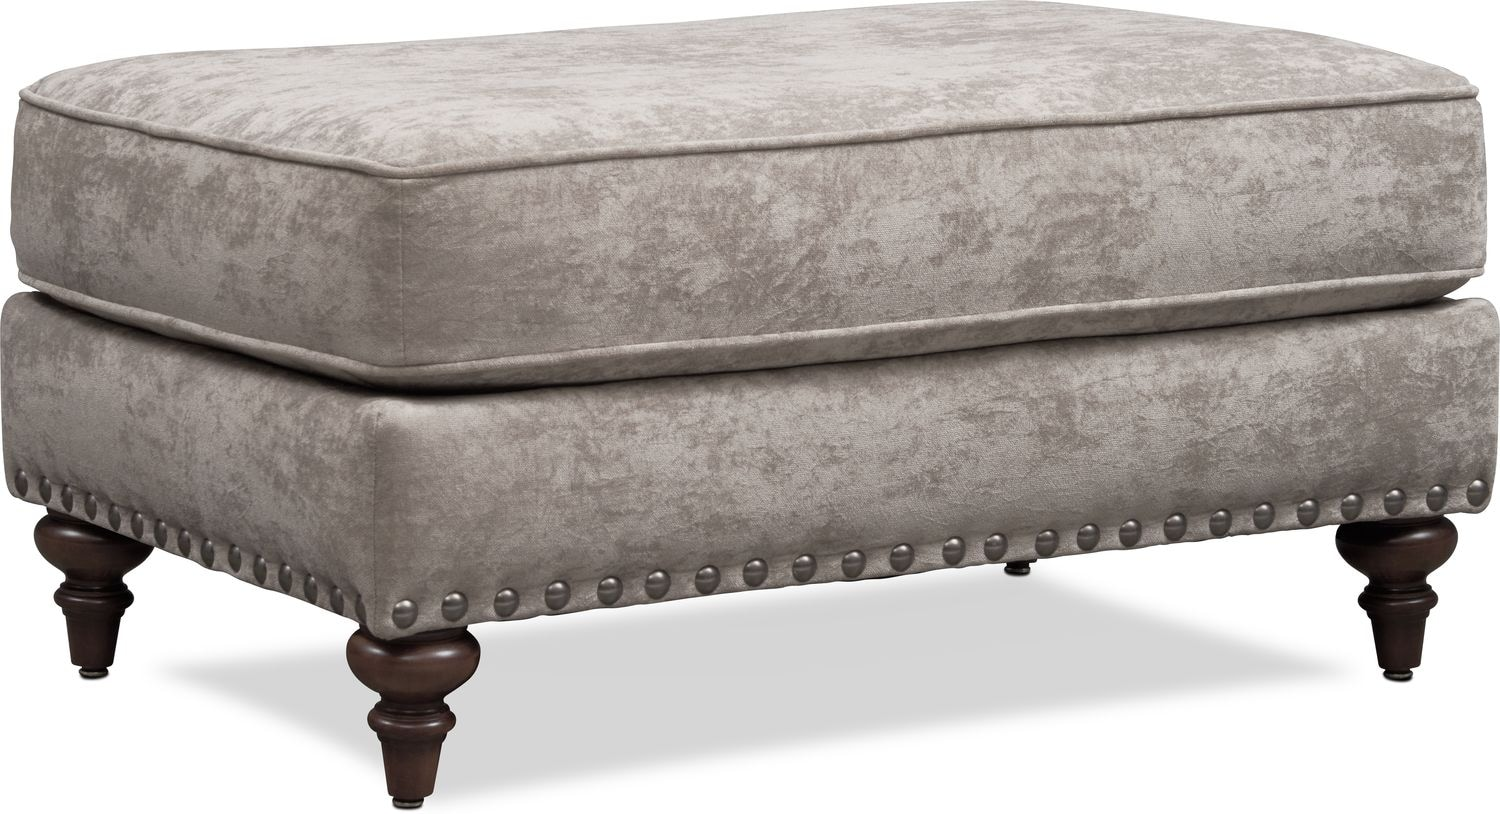 Living Room Furniture - London Ottoman